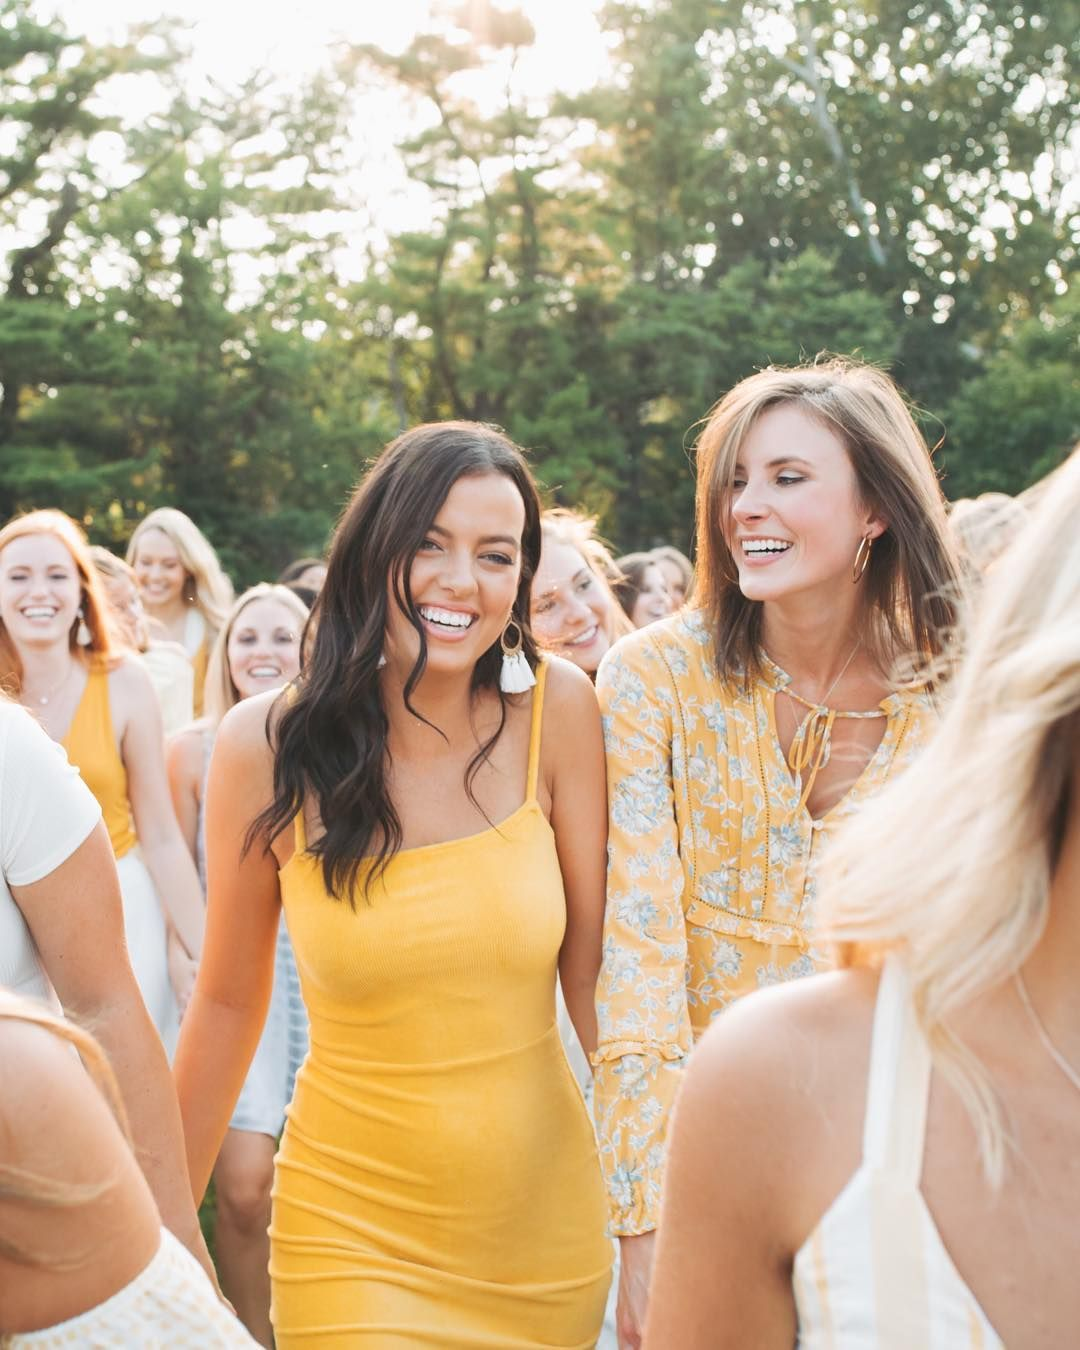 Yellow White Outfit Color Scheme Sorority Outfits Sorority Photoshoot Recruitment Outfits [ 1350 x 1080 Pixel ]